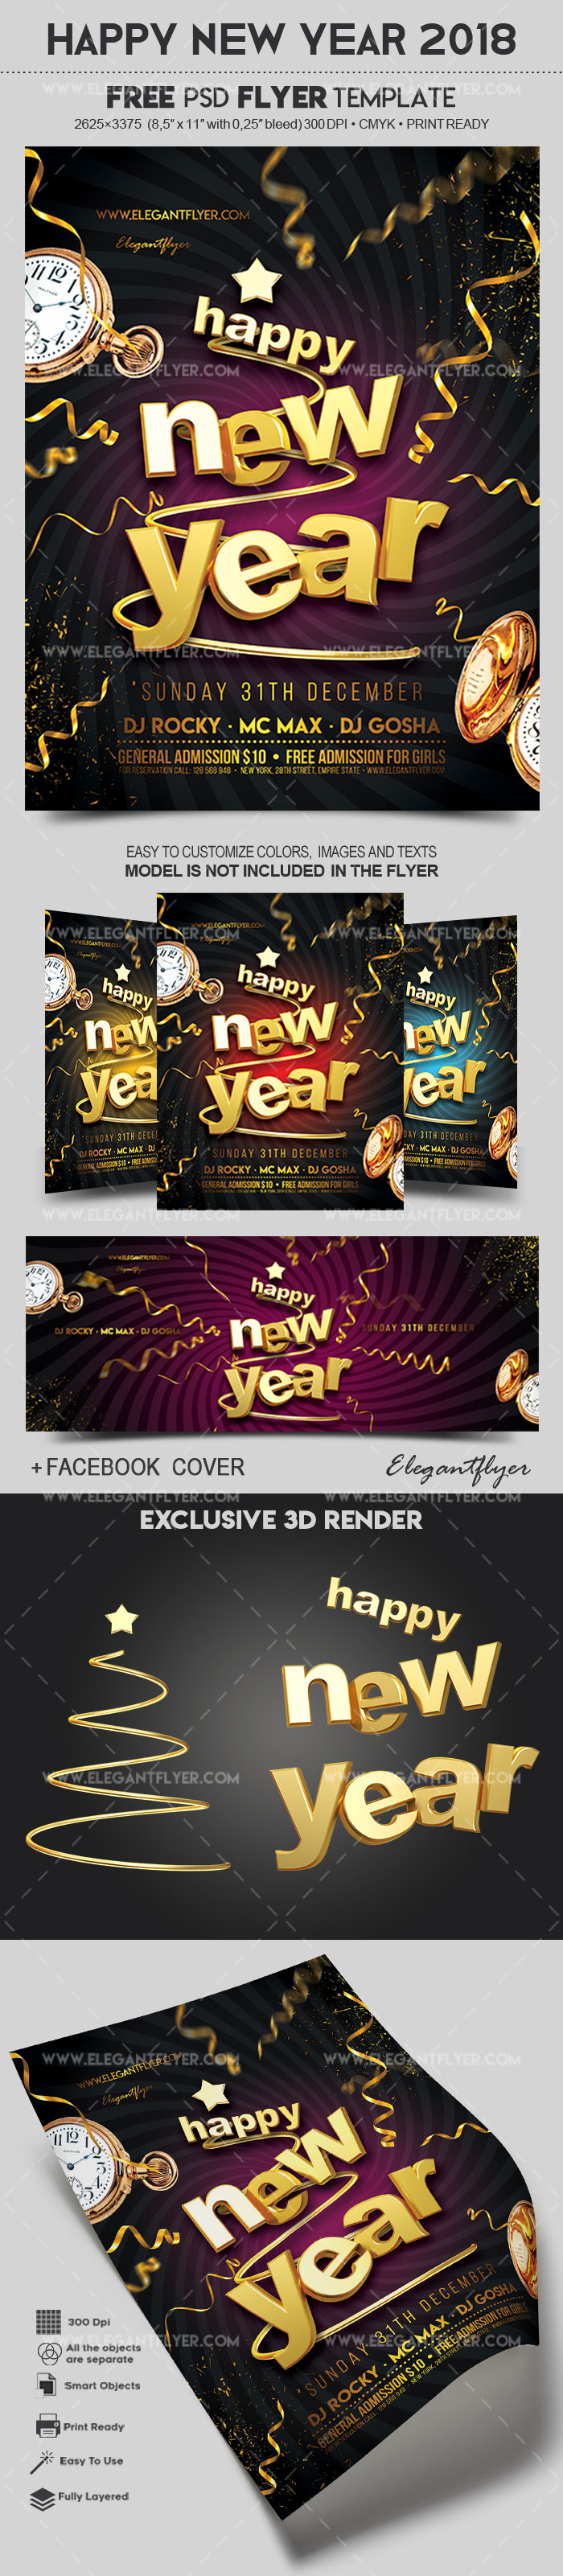 happy new year 2018 free flyer psd template